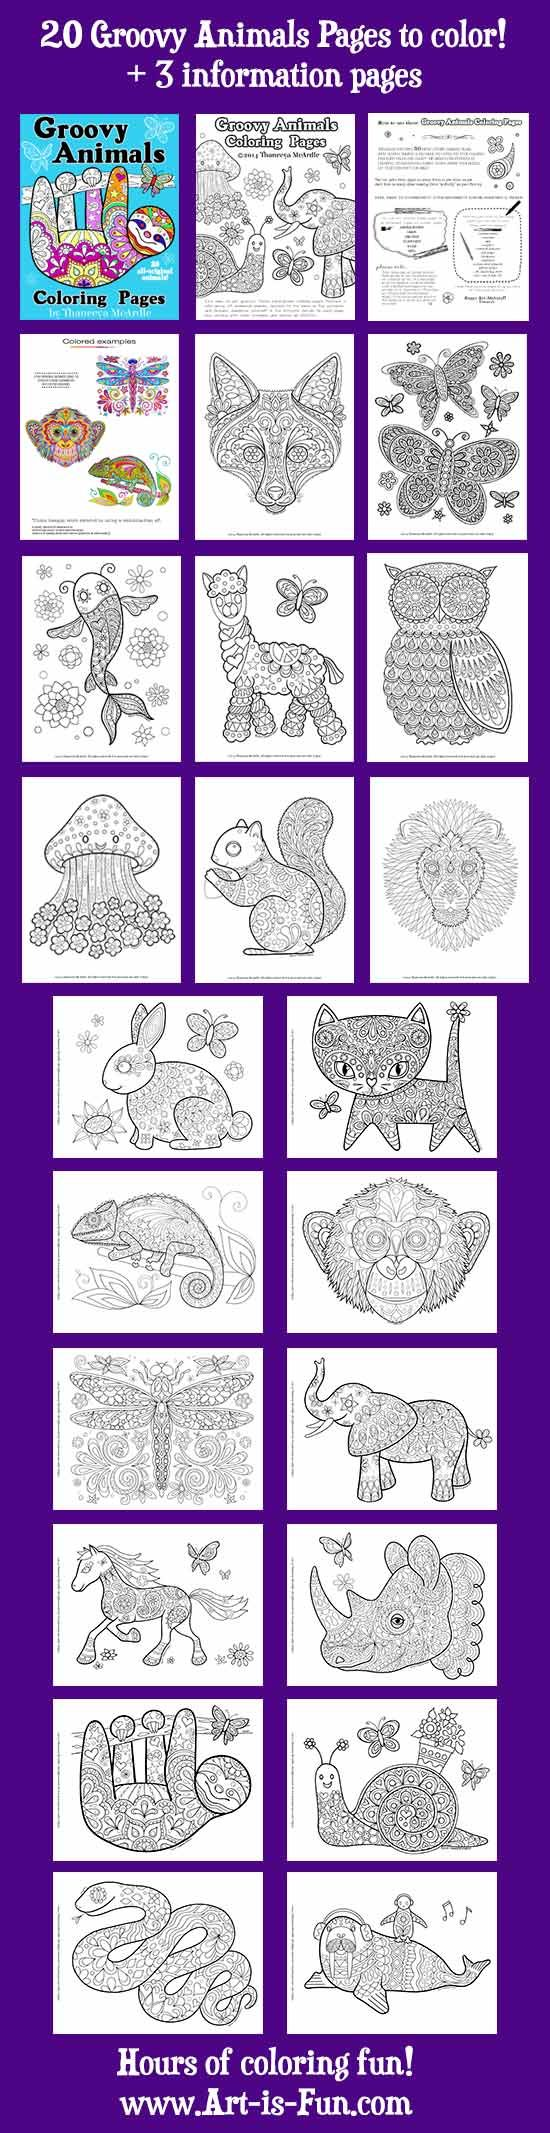 groovy animals coloring pages by thaneeya mcardle 20 detailed